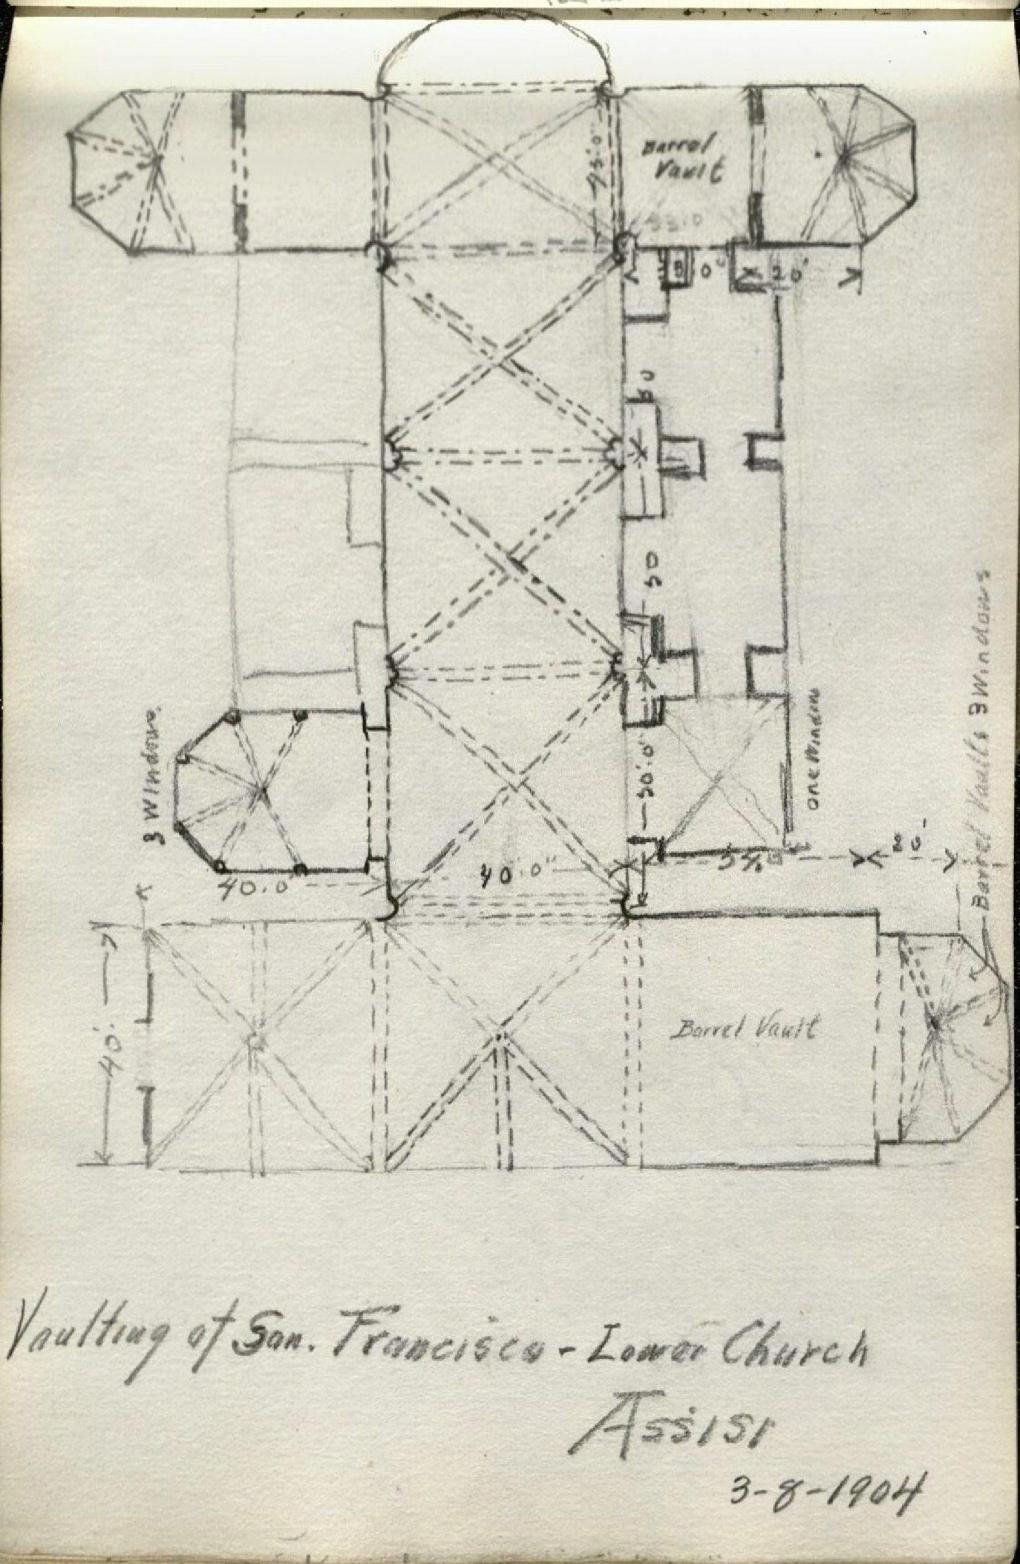 "Alda Wilson European Sketchbook page, pencil illustration of architecture from an aerial view, entitled ""Vaulting of San. Francisco - Lower Church Assisi 3-8-1904"" (RS#21/7/24, folder 5)"